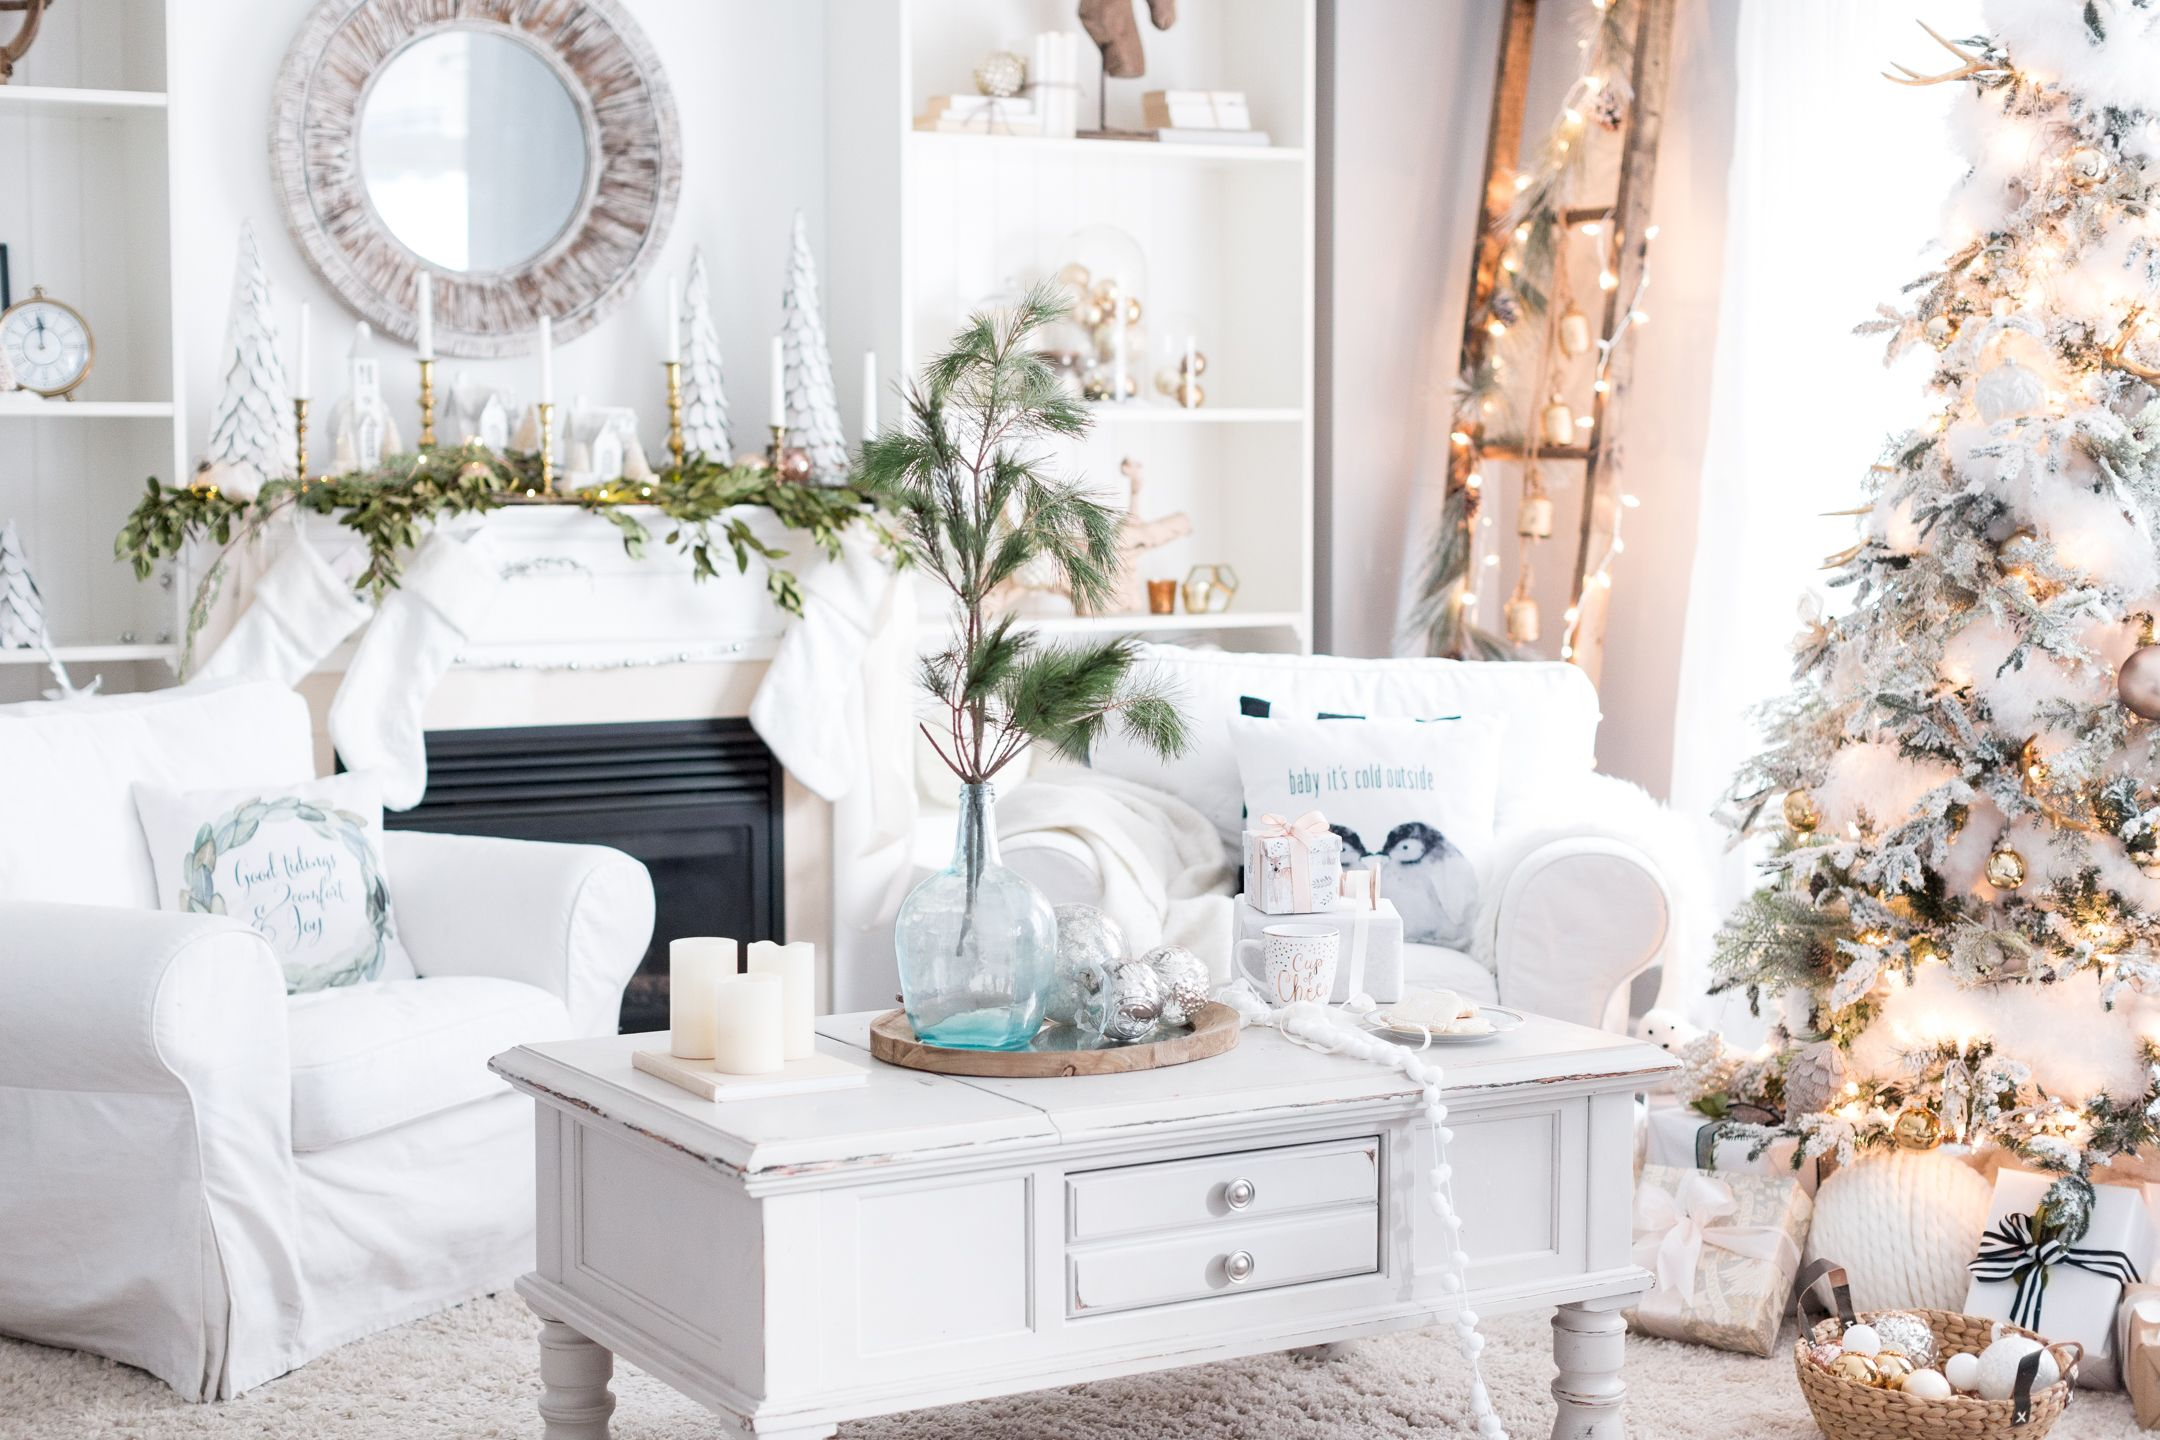 Captivating Holiday Decor Small Space